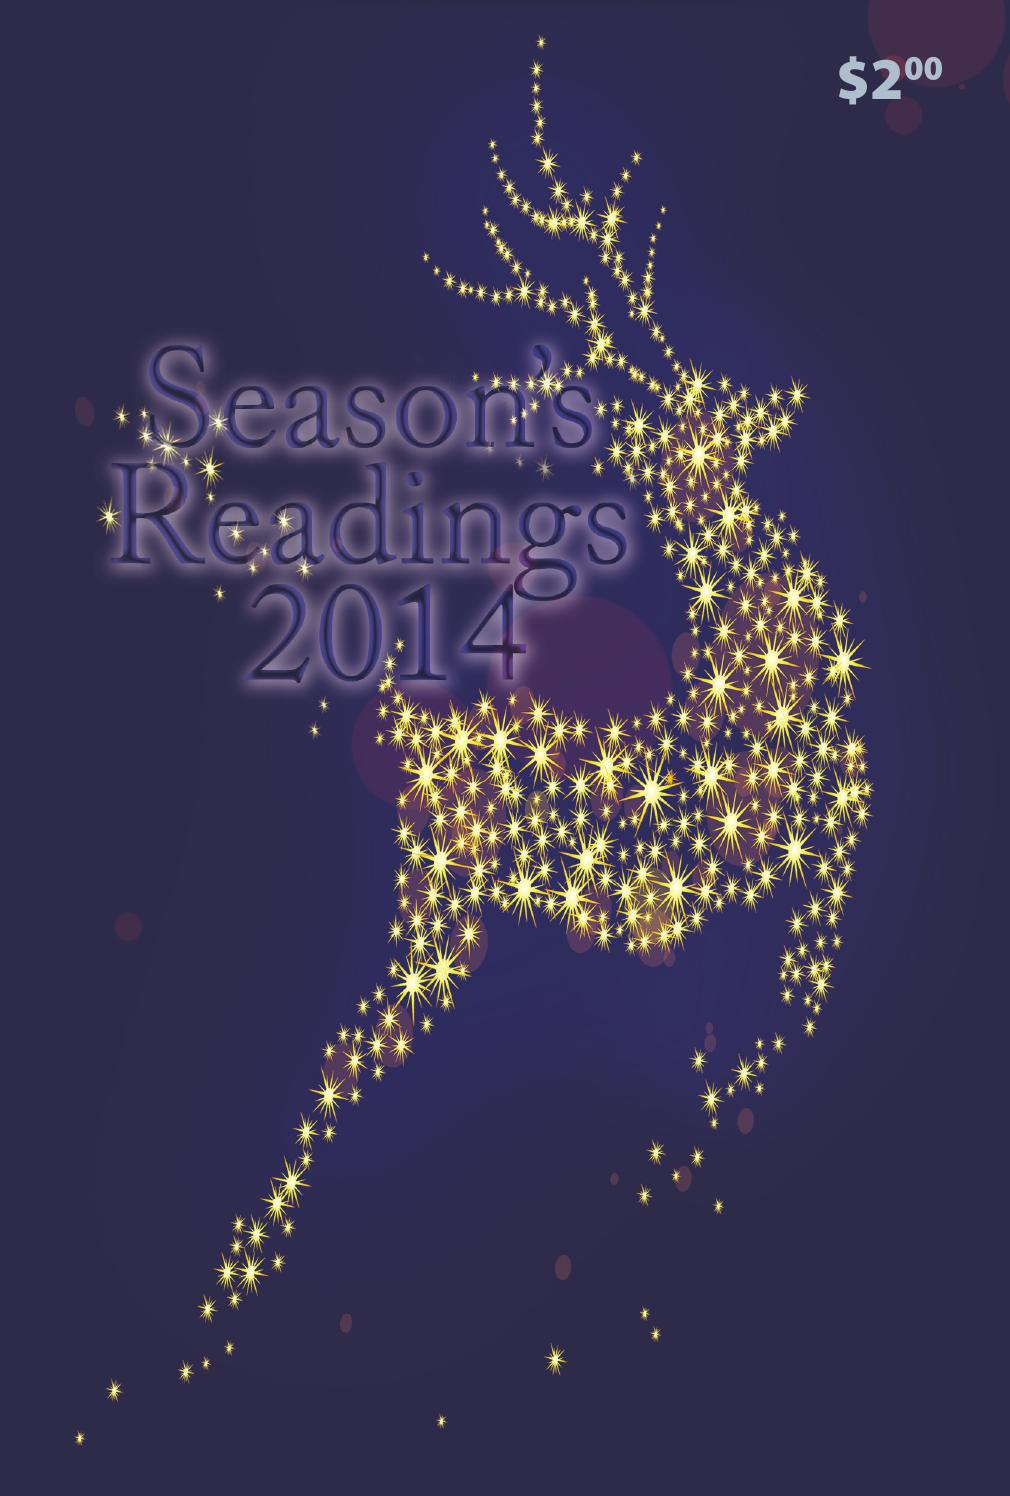 Season's Readings - 2014 by Durham County Library - issuu